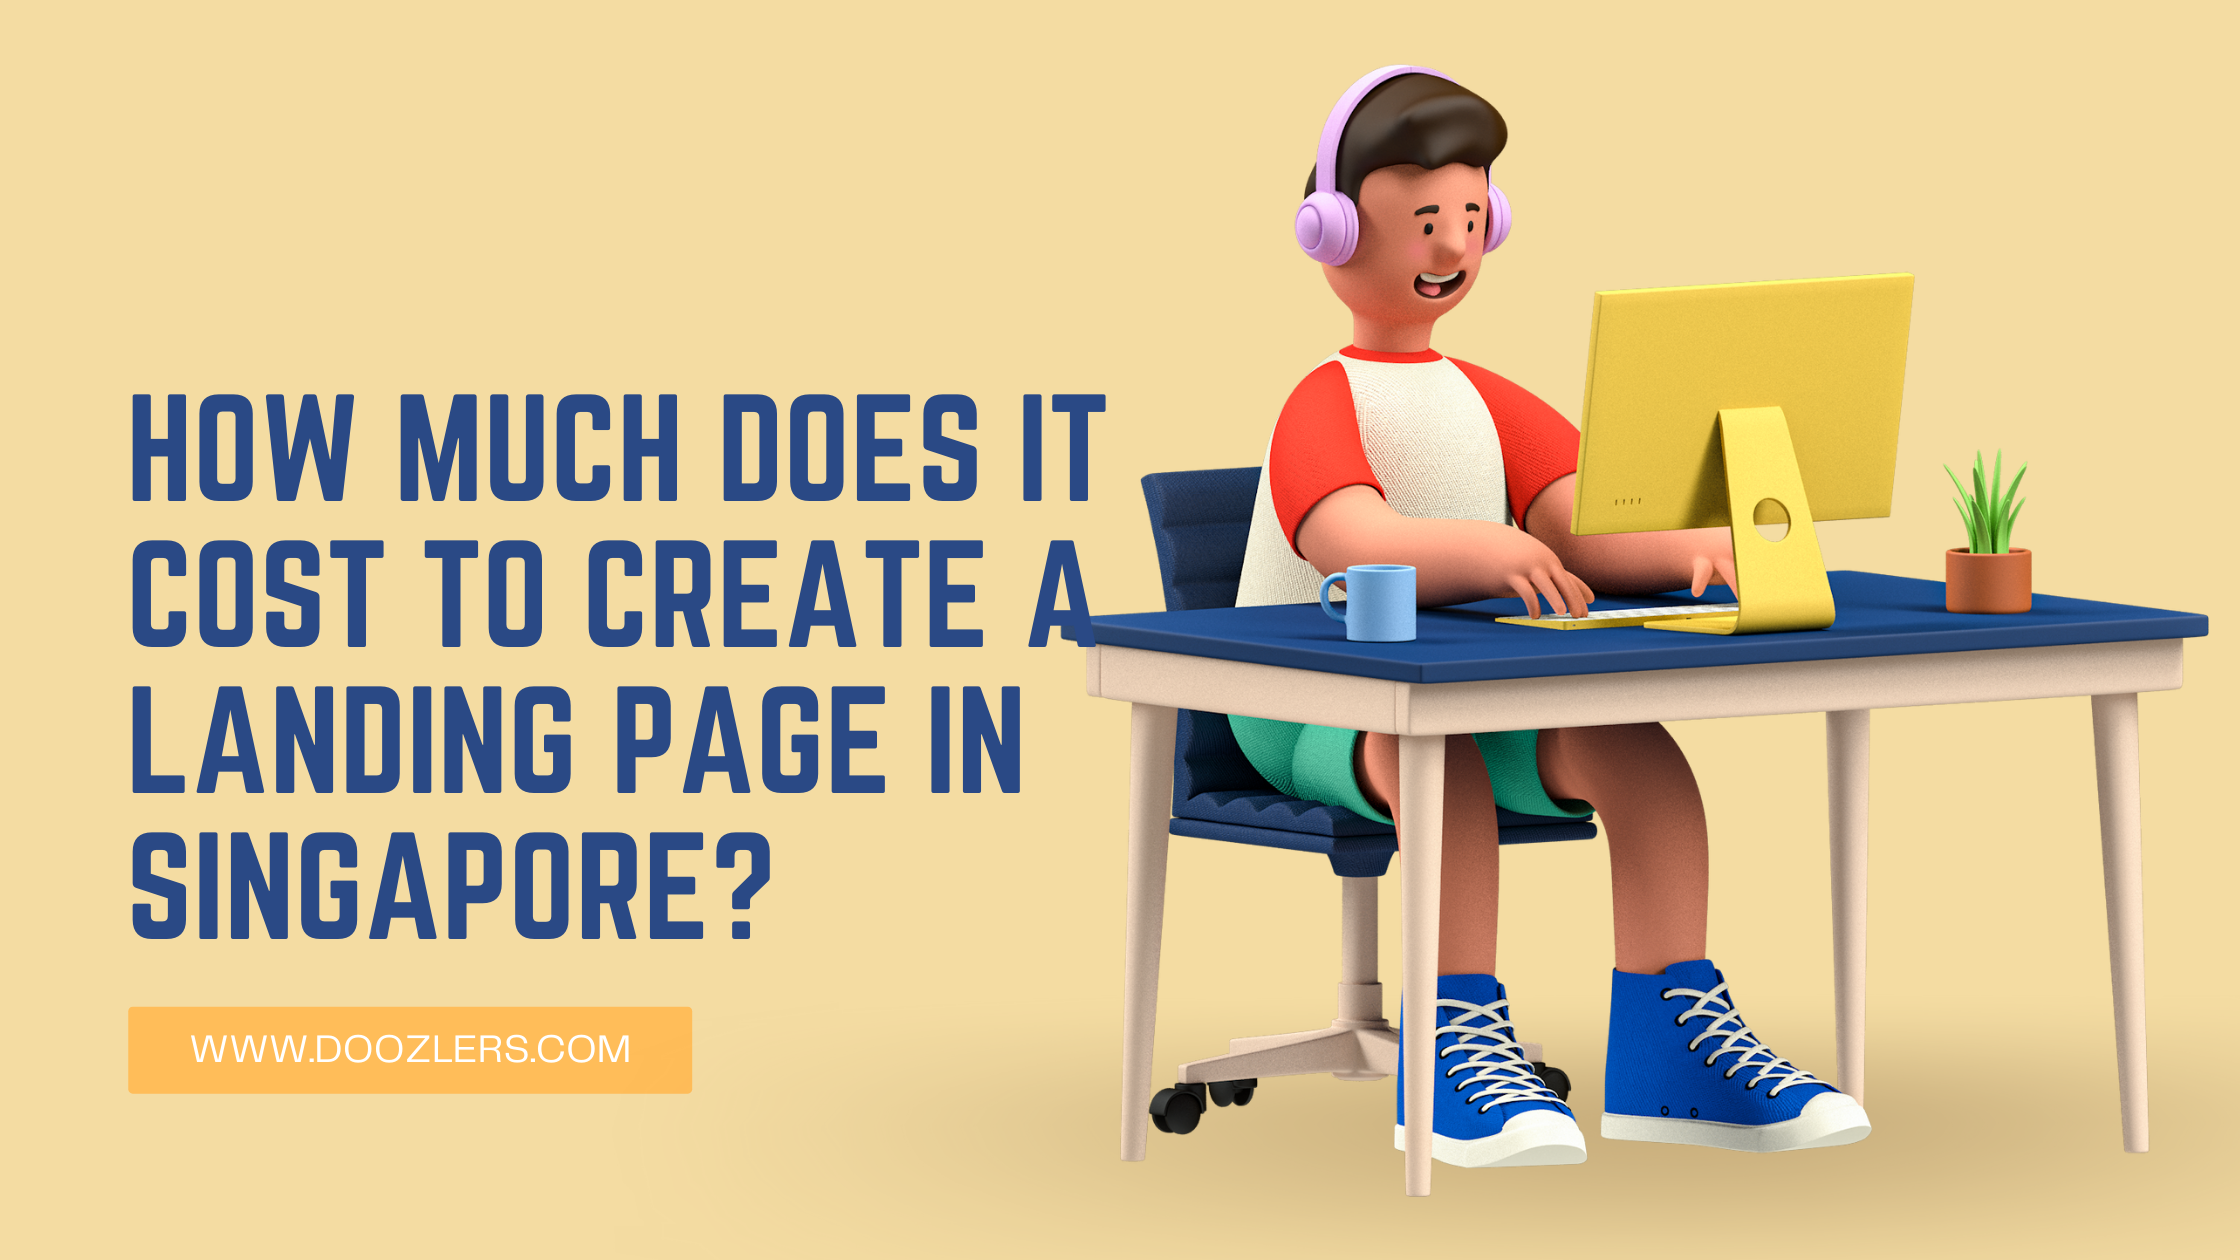 cost to create a landing page in Singapore